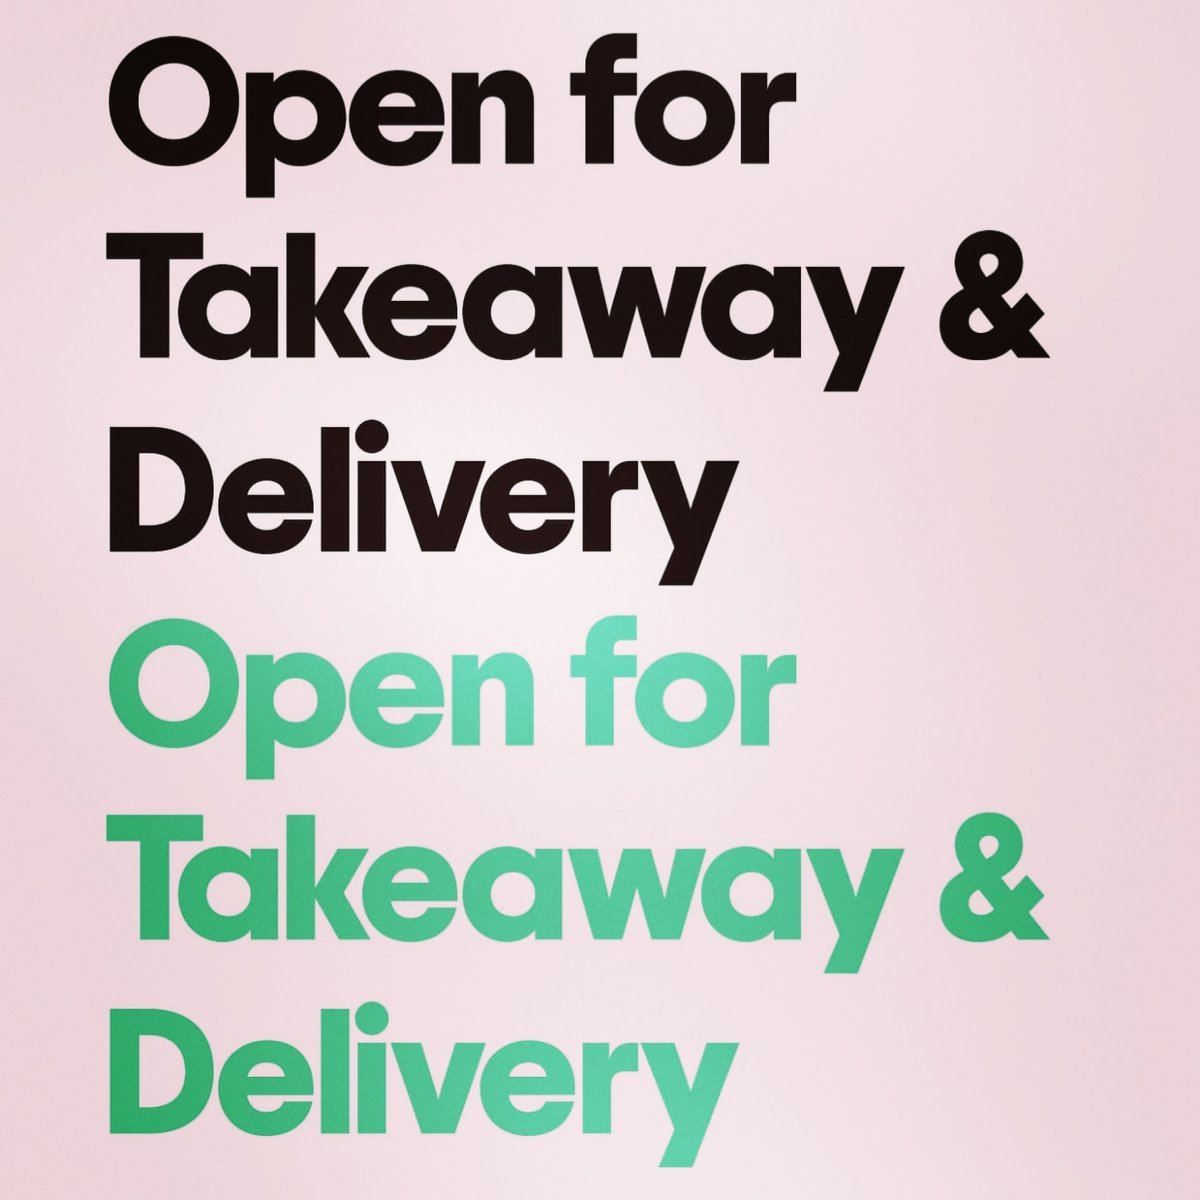 Collection or delivery available phone orders only 01295 703073-703074 opening hours limited Monday - Friday 5pm-10pm Saturday - Sunday 12pm-10pm  #Pizzacalzone #calzone #pizza #banbury#bestfood #italianrestauran#takeaway #Italian #italianfood #pasta #collection #desert #banbury